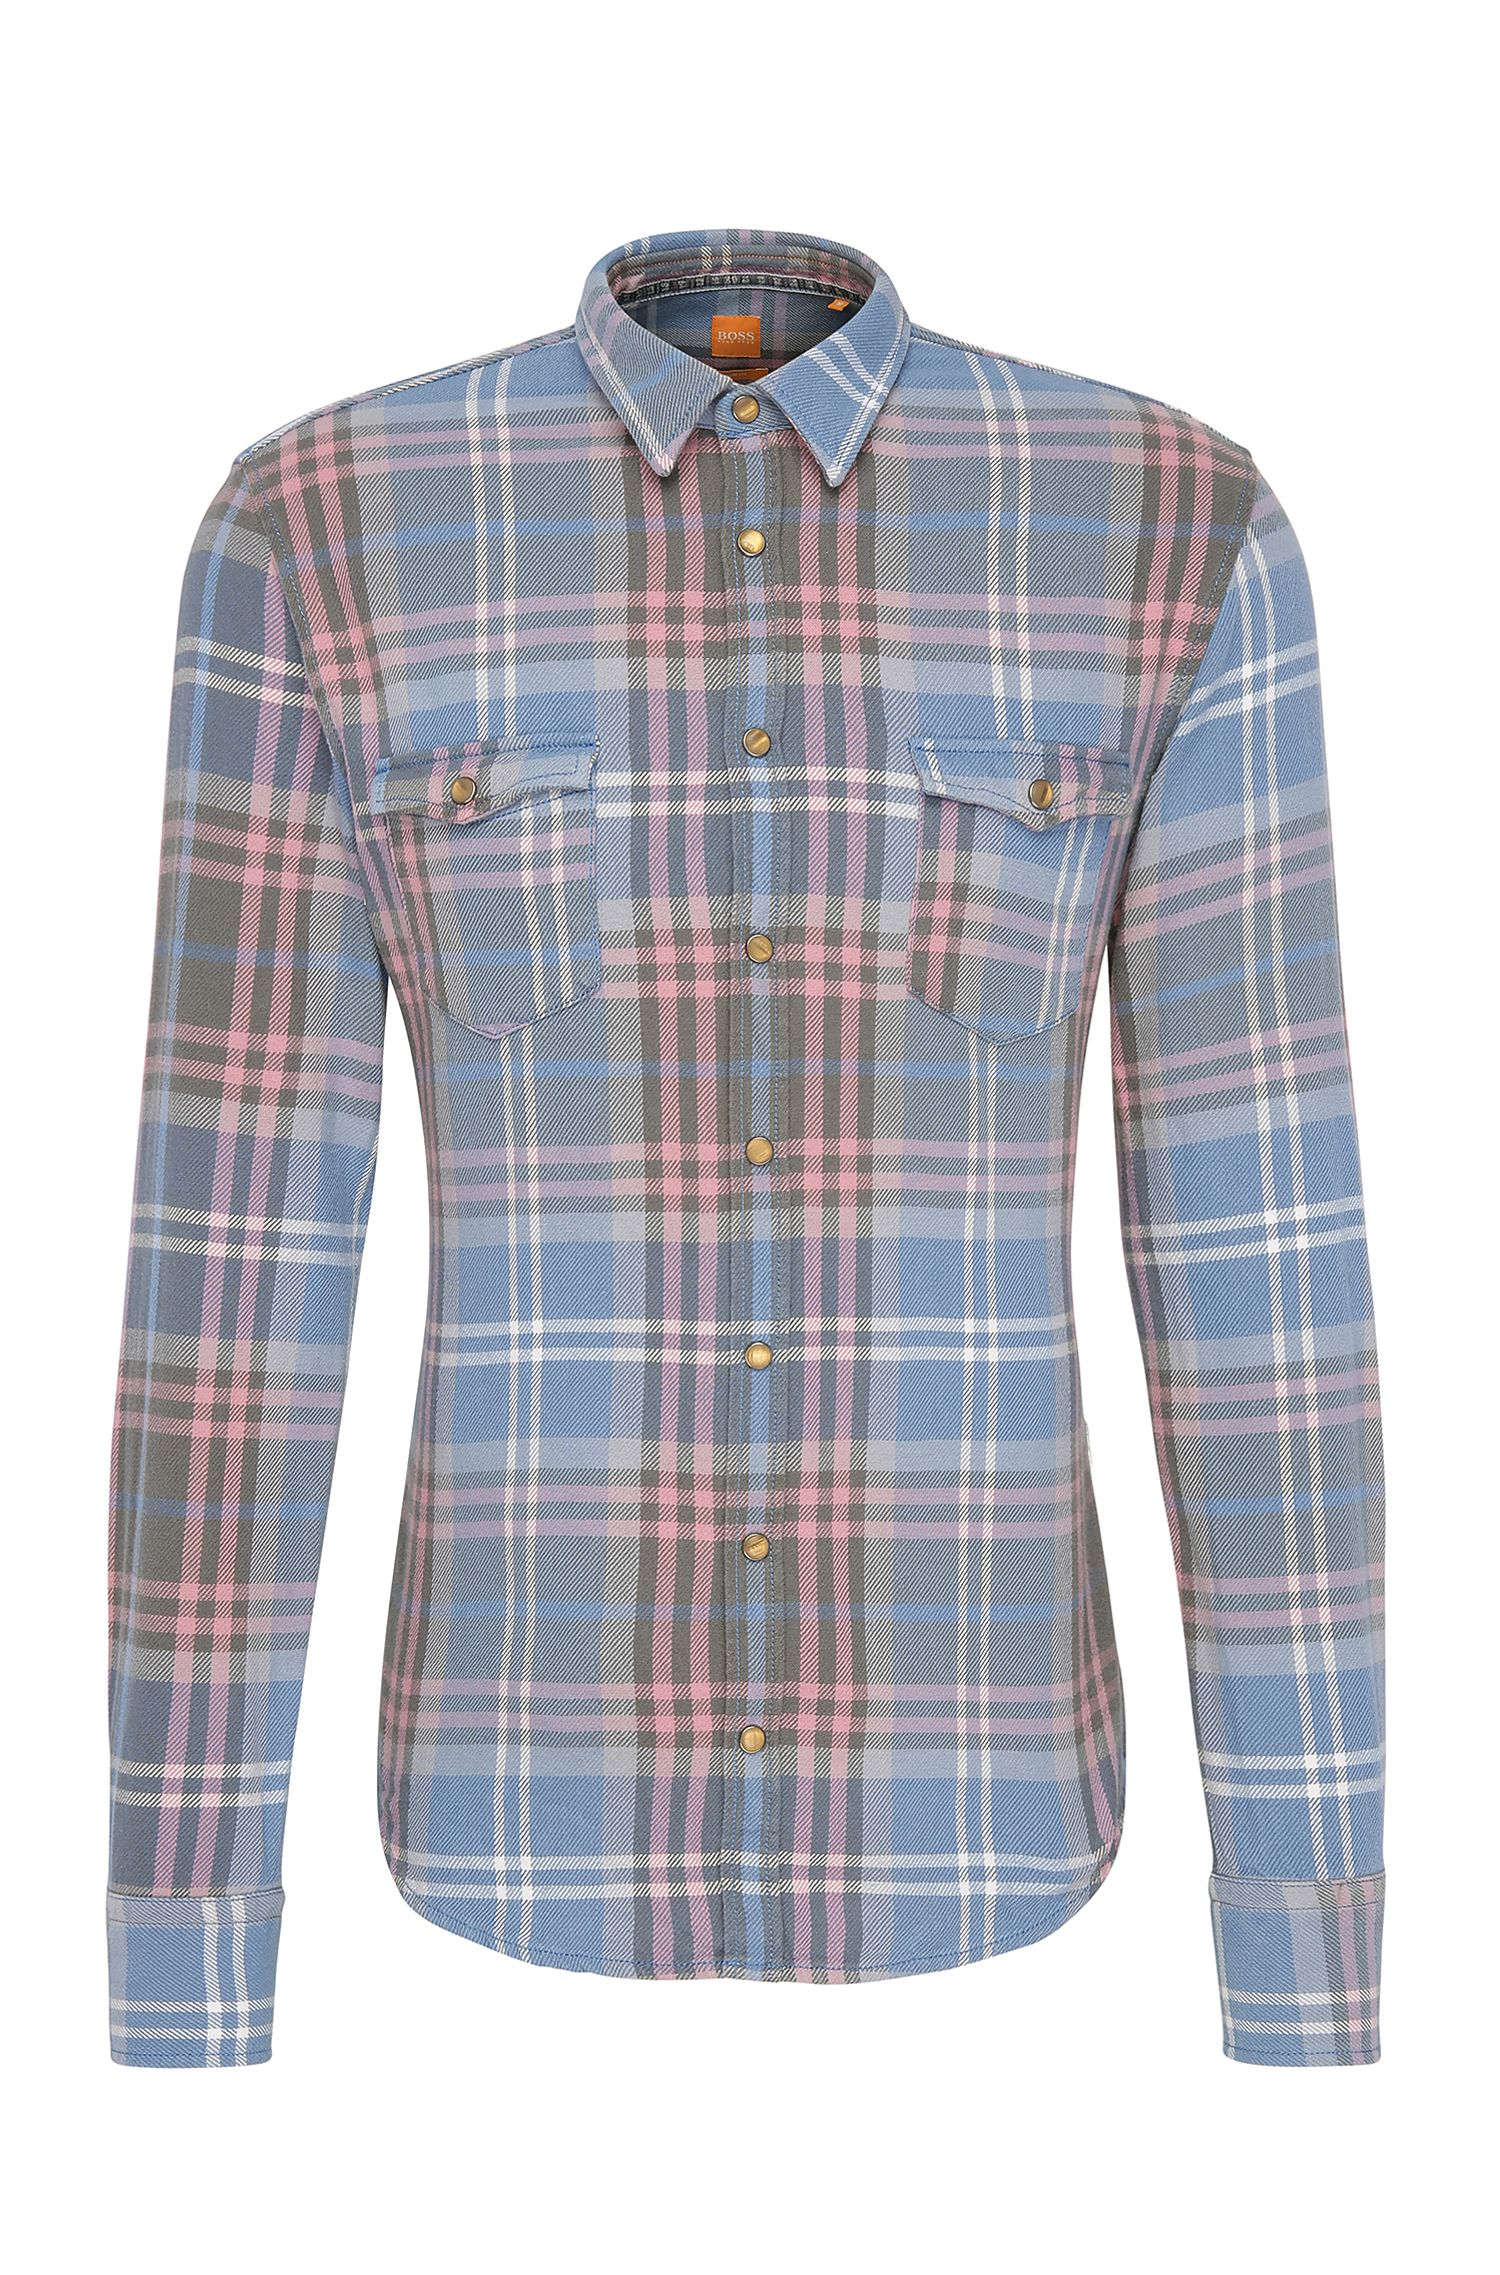 Plaid Cotton Button Down Shirt, Slim Fit | EdoslimE